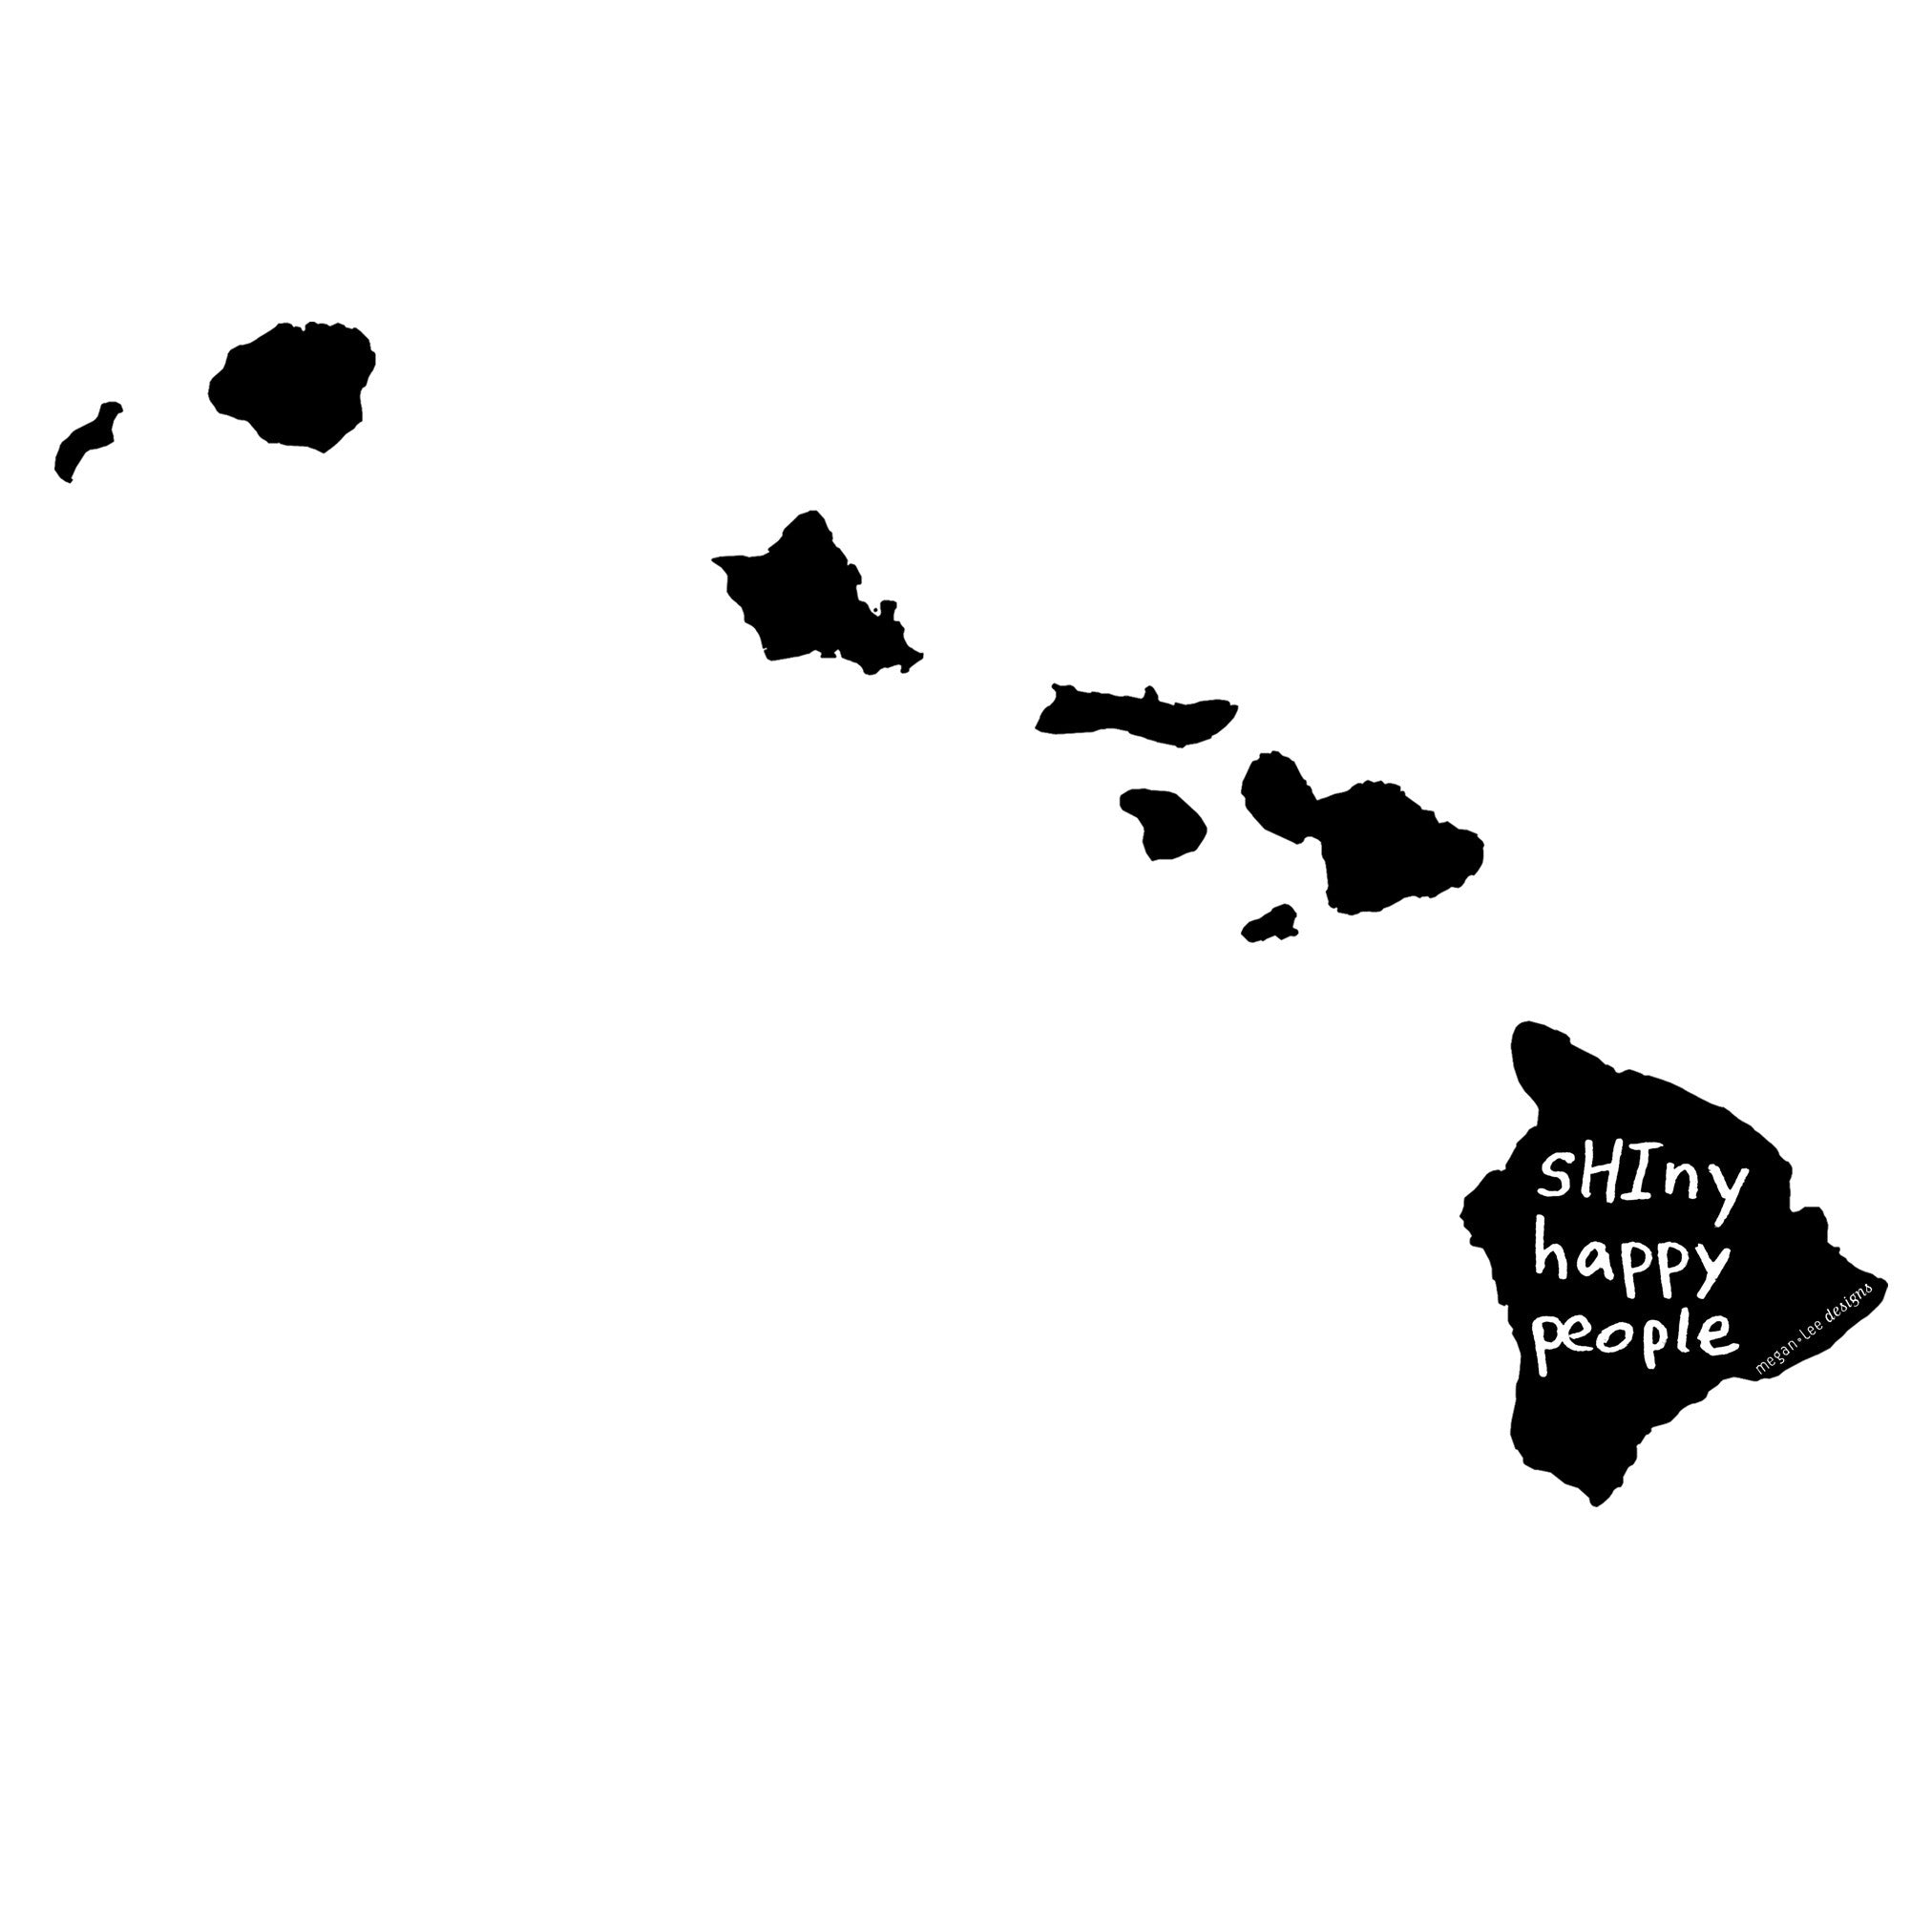 Hawaii : sHIny happy people unisex tri-blend tee, Unisex Apparel - Megan Lee Designs